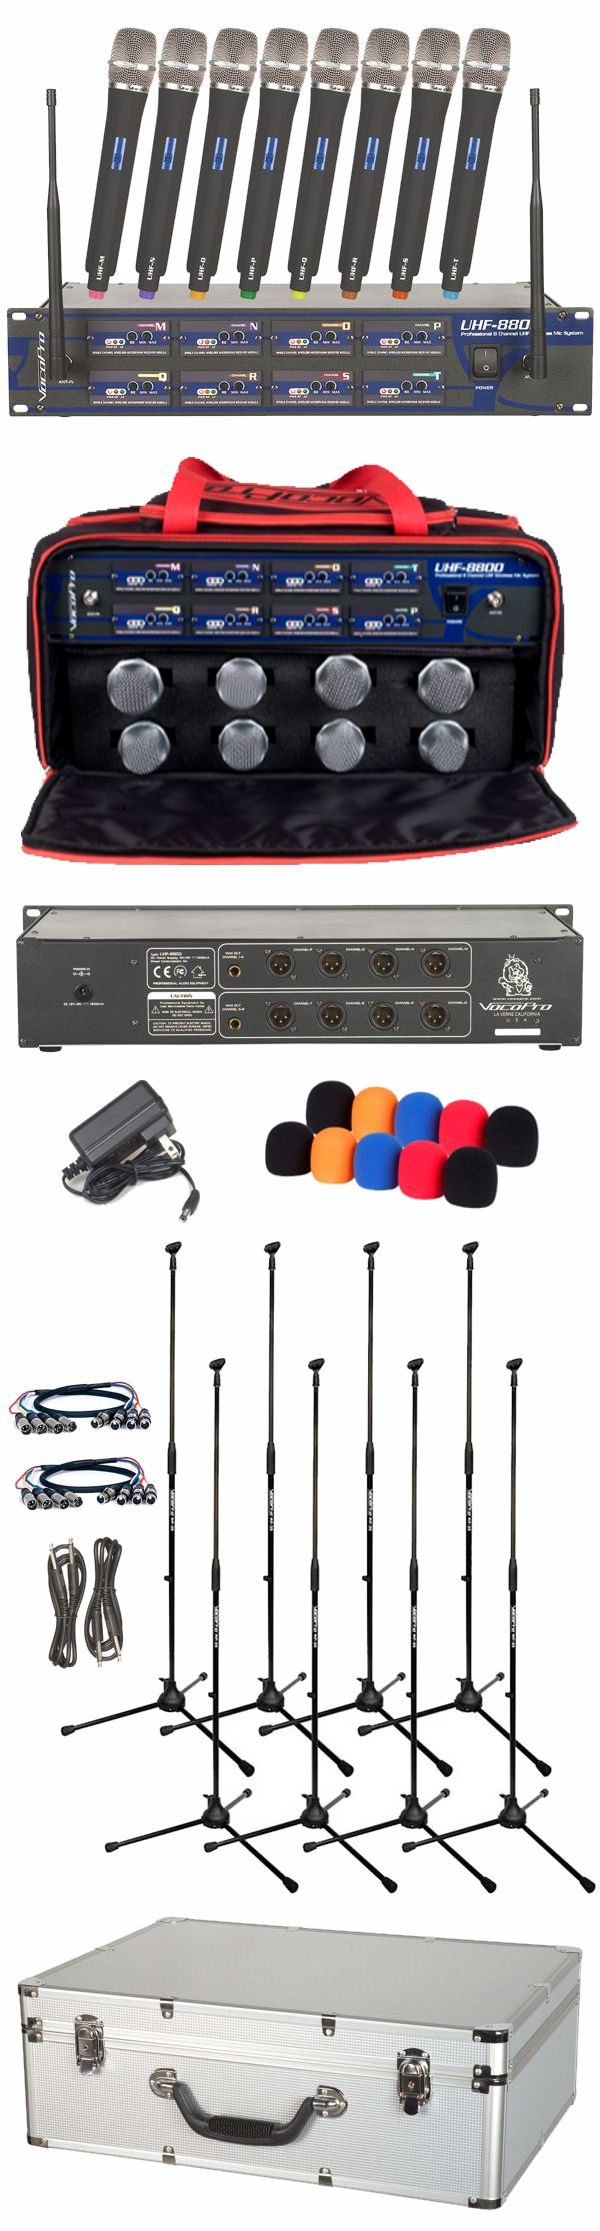 8 Channel UHF Wireless Microphone System with XLR Cables and Mic Stands (Freq: 9I, 9J, 9K, 9L, 9M, 9N, 9O, 9P)